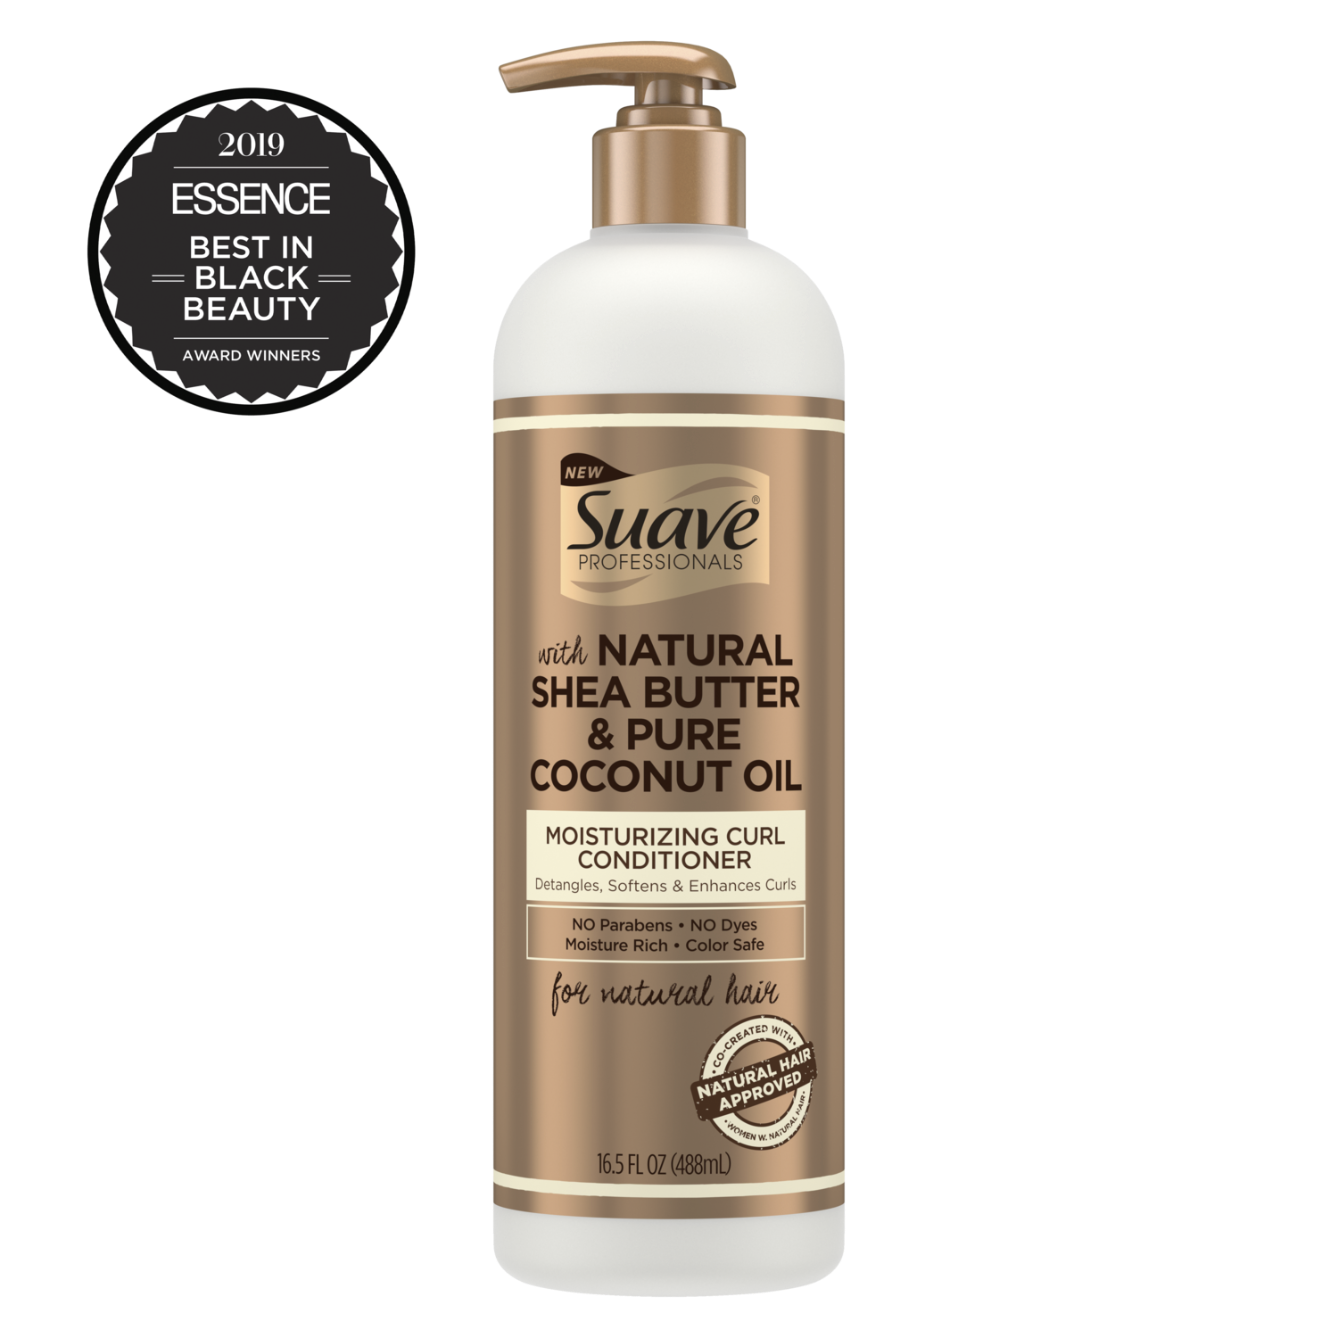 Suave Professionals Moisturizing Curl Conditioner 16.5oz